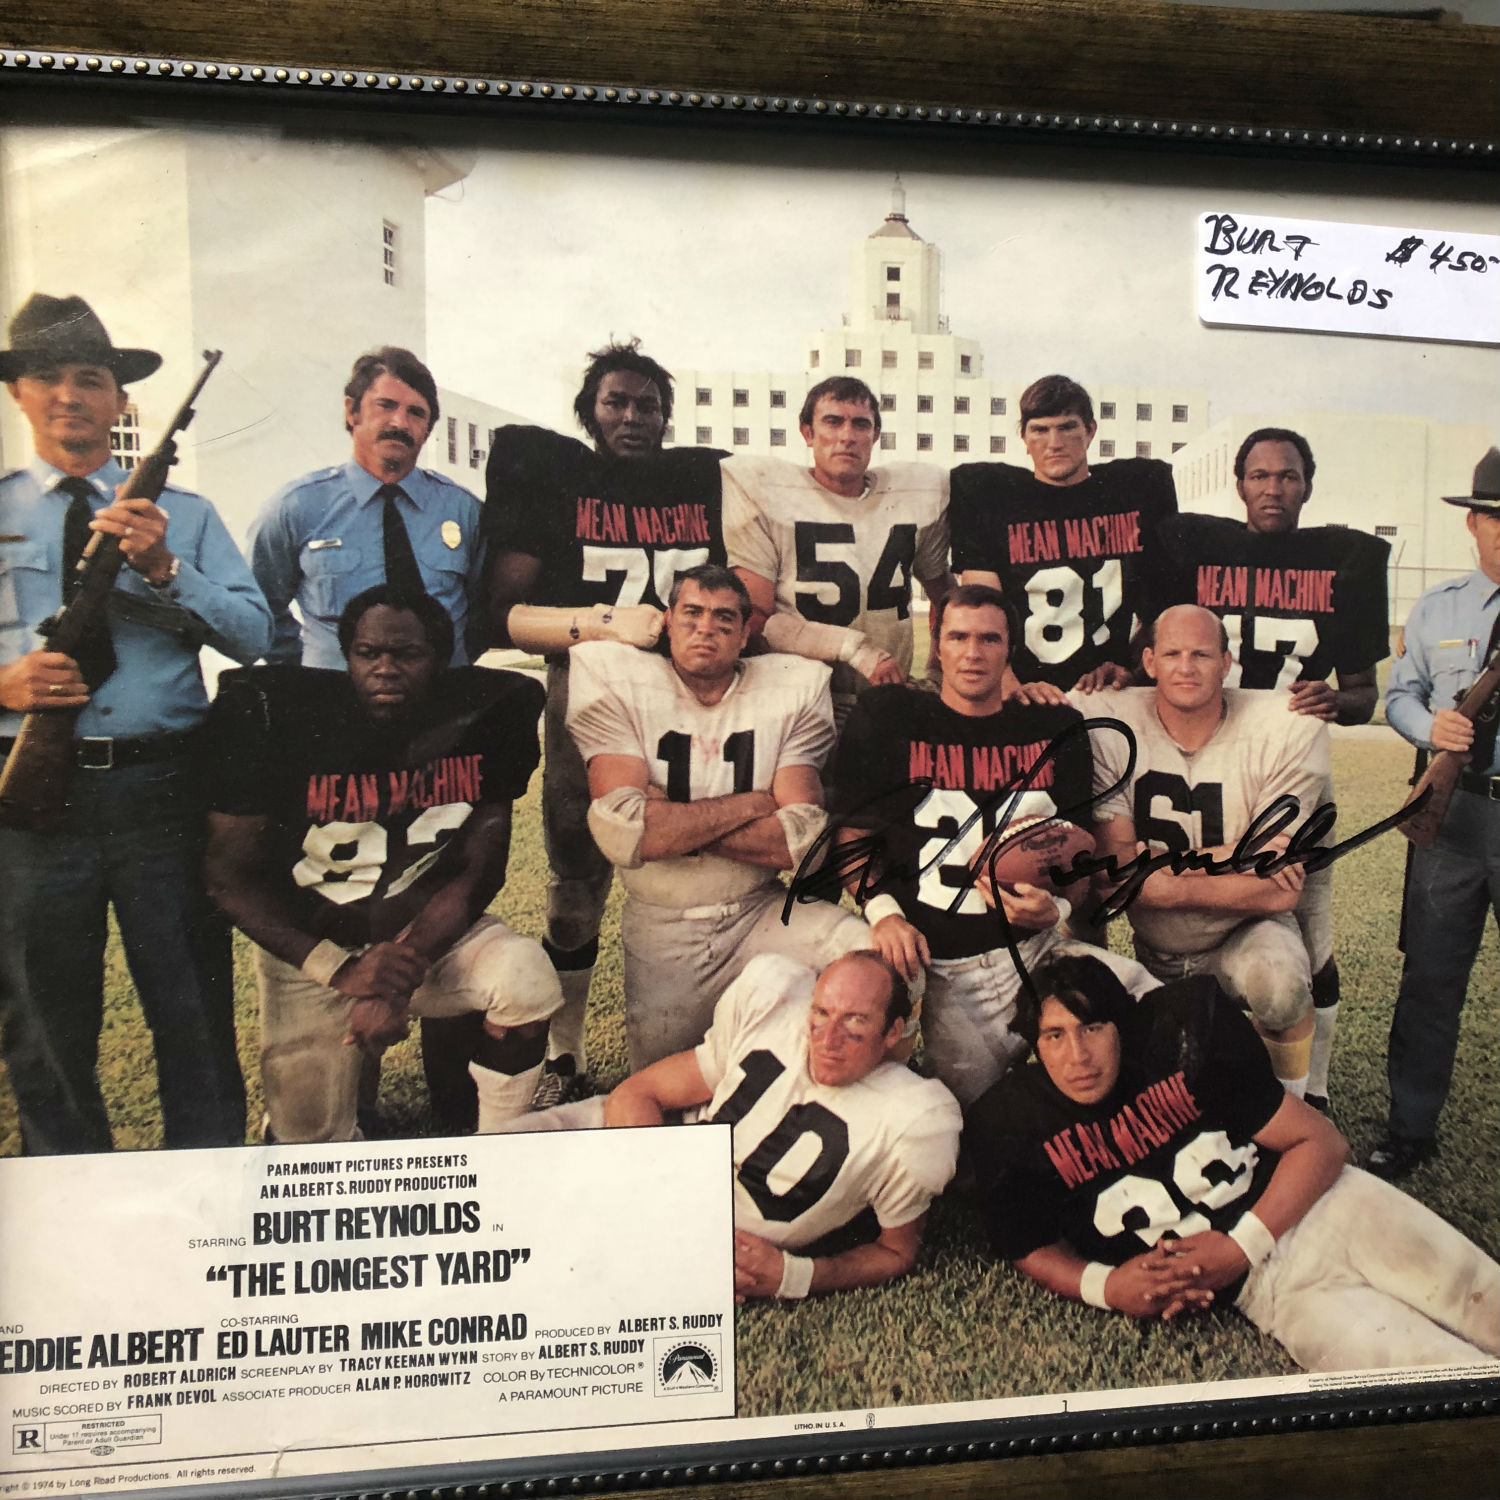 Framed and autographed photo of Burt Reynolds - The Longest Yard